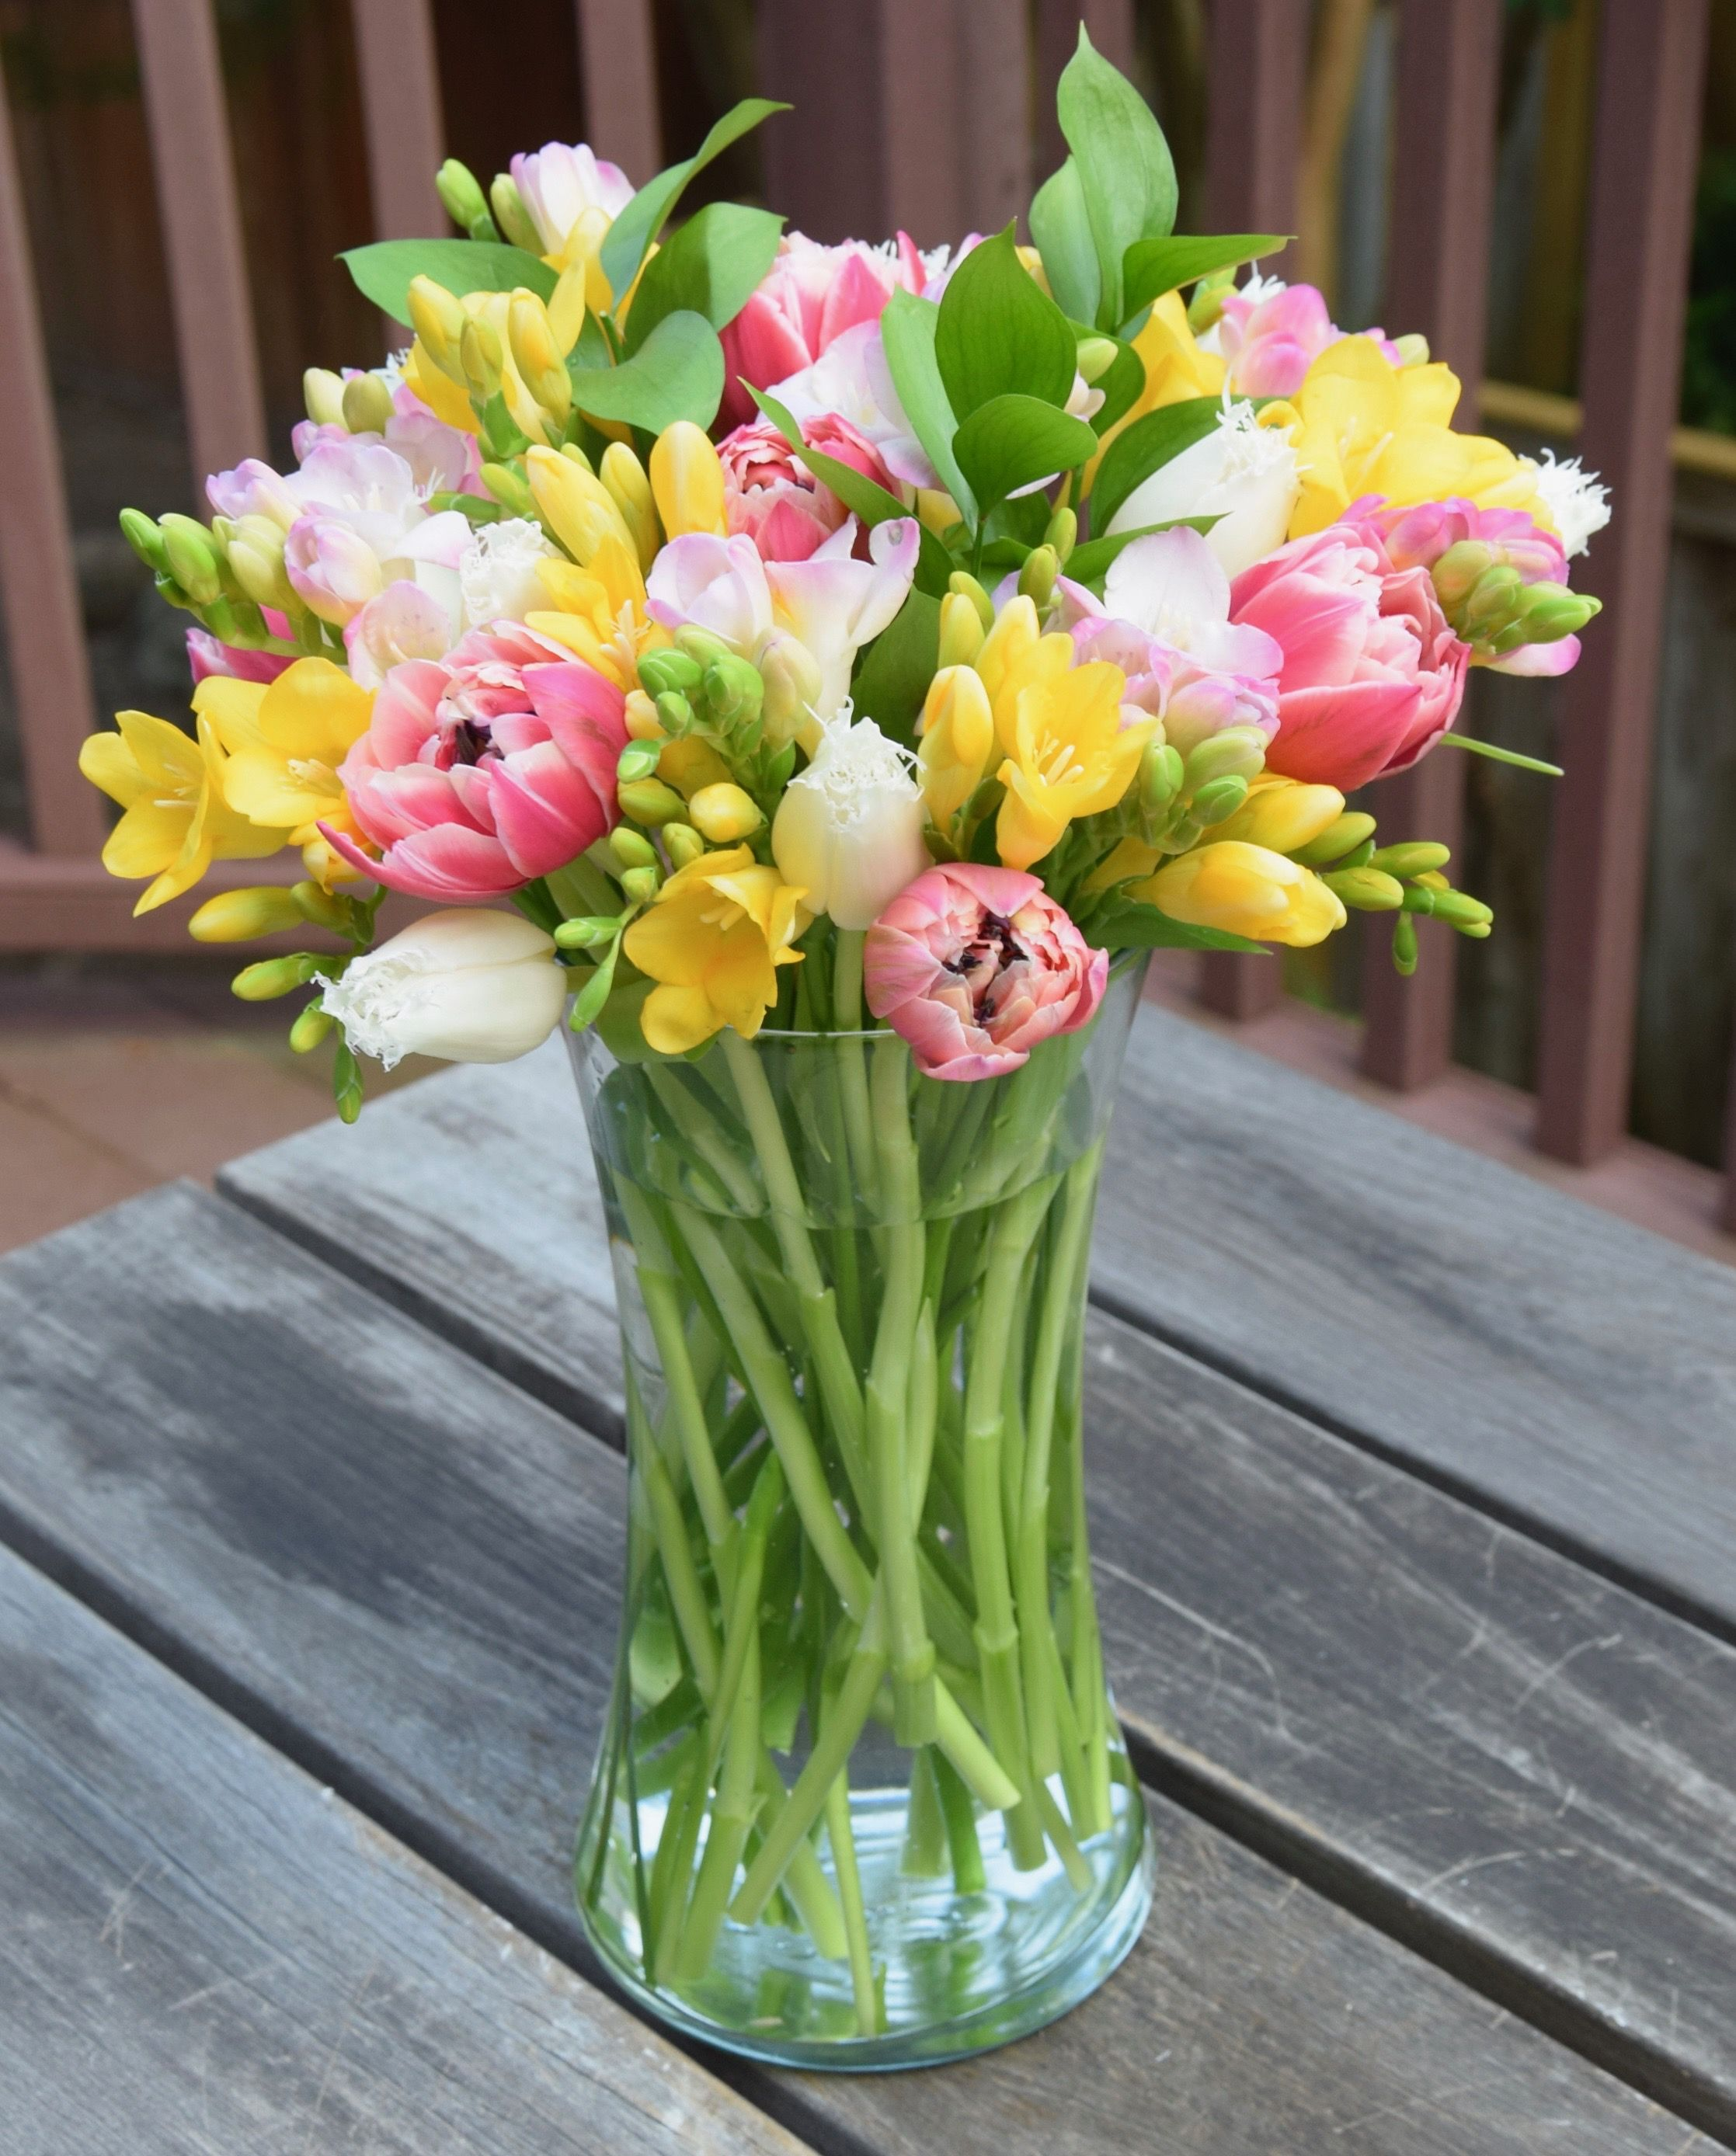 Tulips And Freesias Flower Arrangement Fresh Flowers Arrangements Freesia Flowers Flower Arrangements